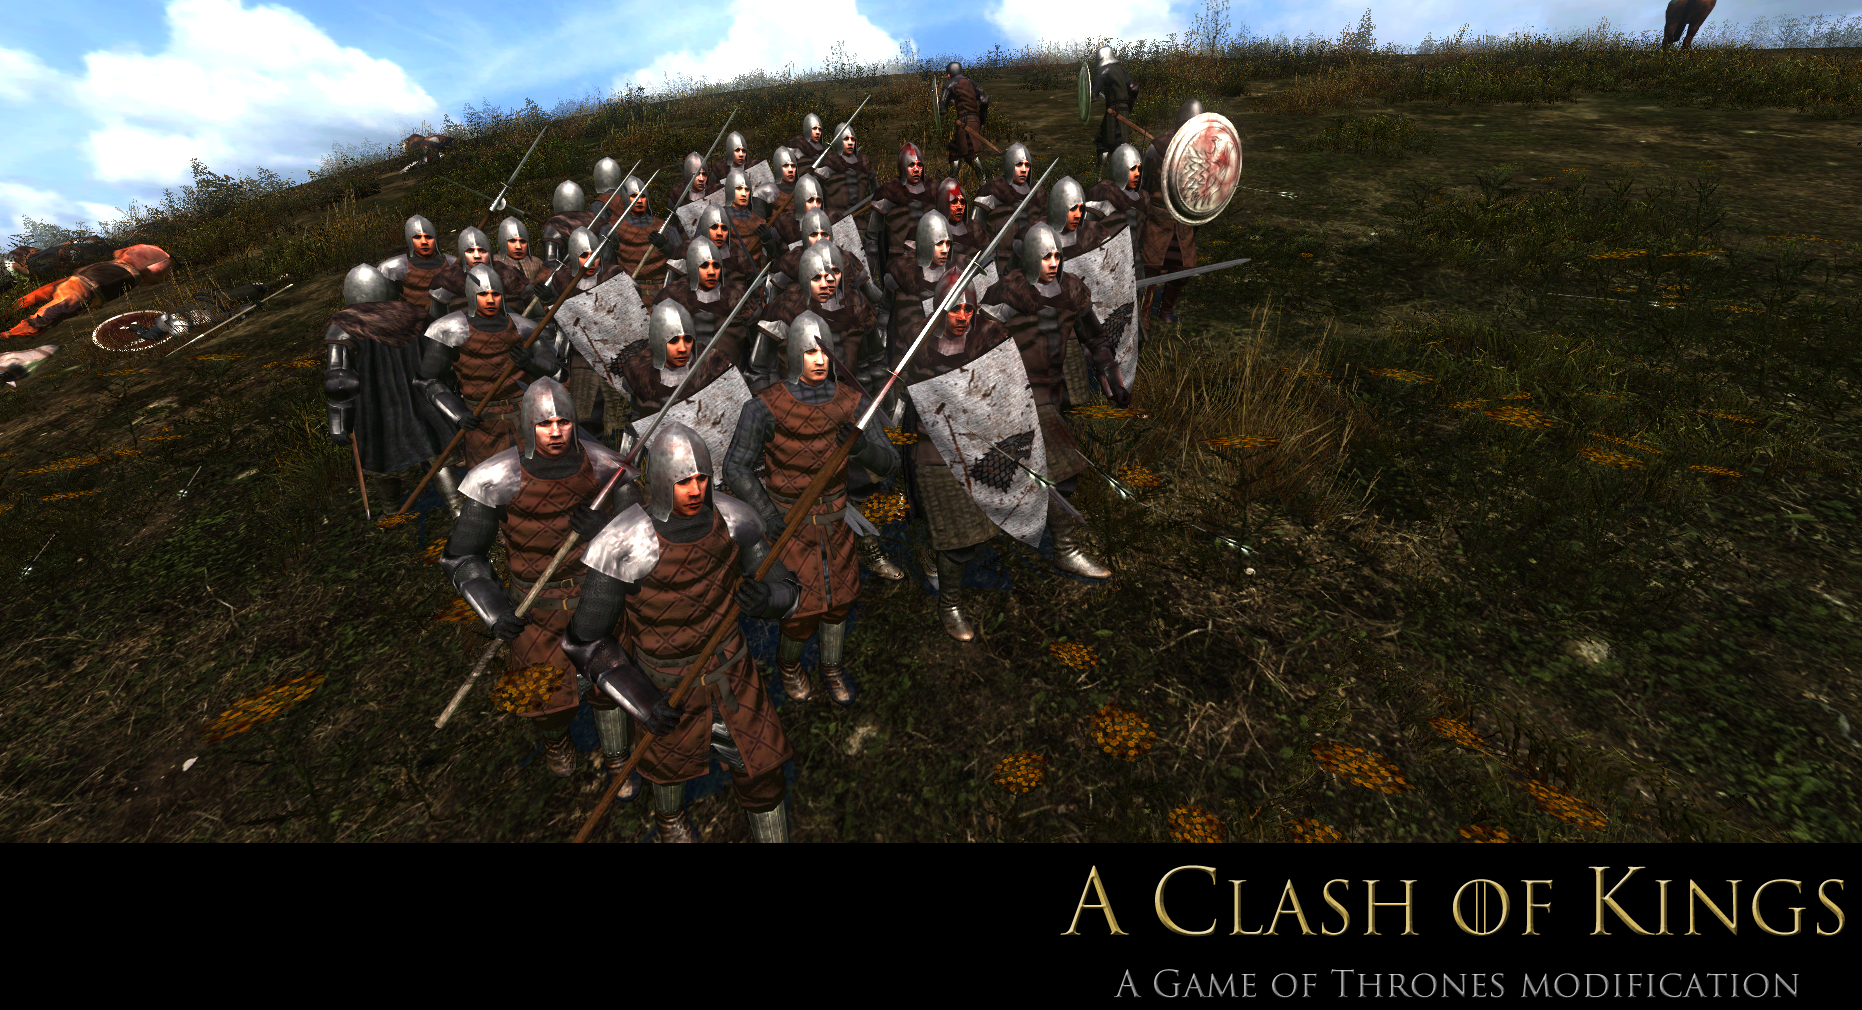 [SP][ES] A Clash of Kings - Página 37 Stark_Lannister_Battle_3